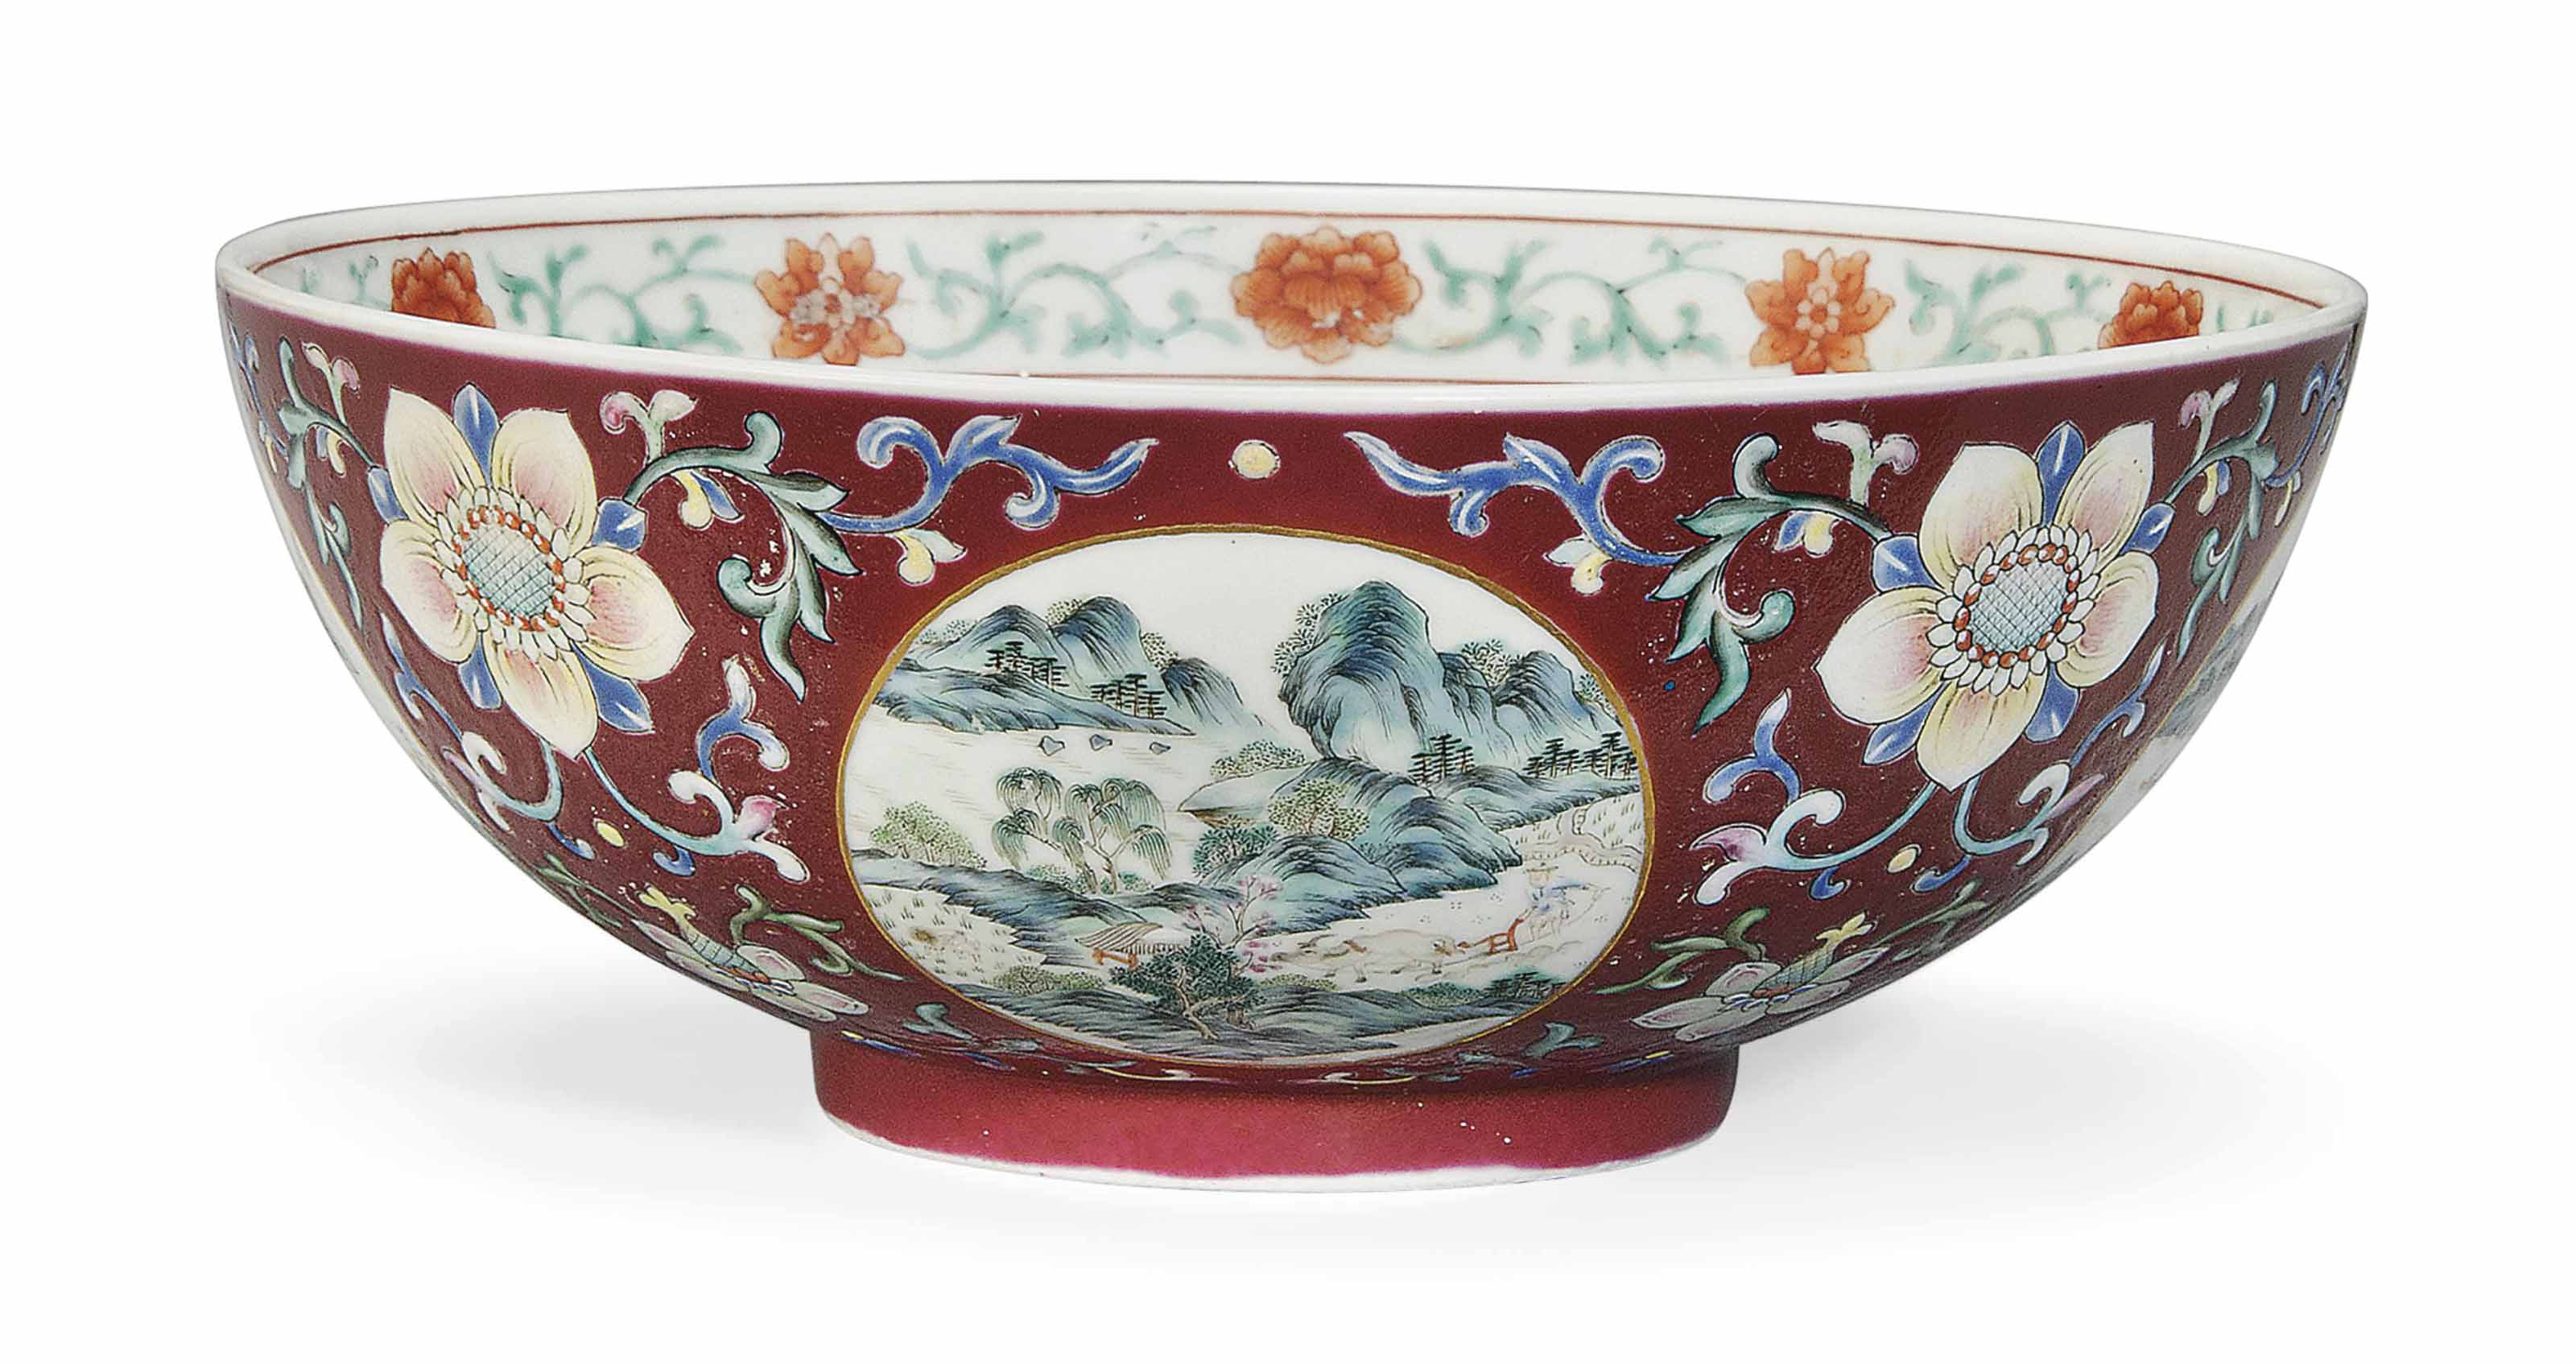 A FAMILLE ROSE RUBY-GROUND 'MEDALLION' BOWL